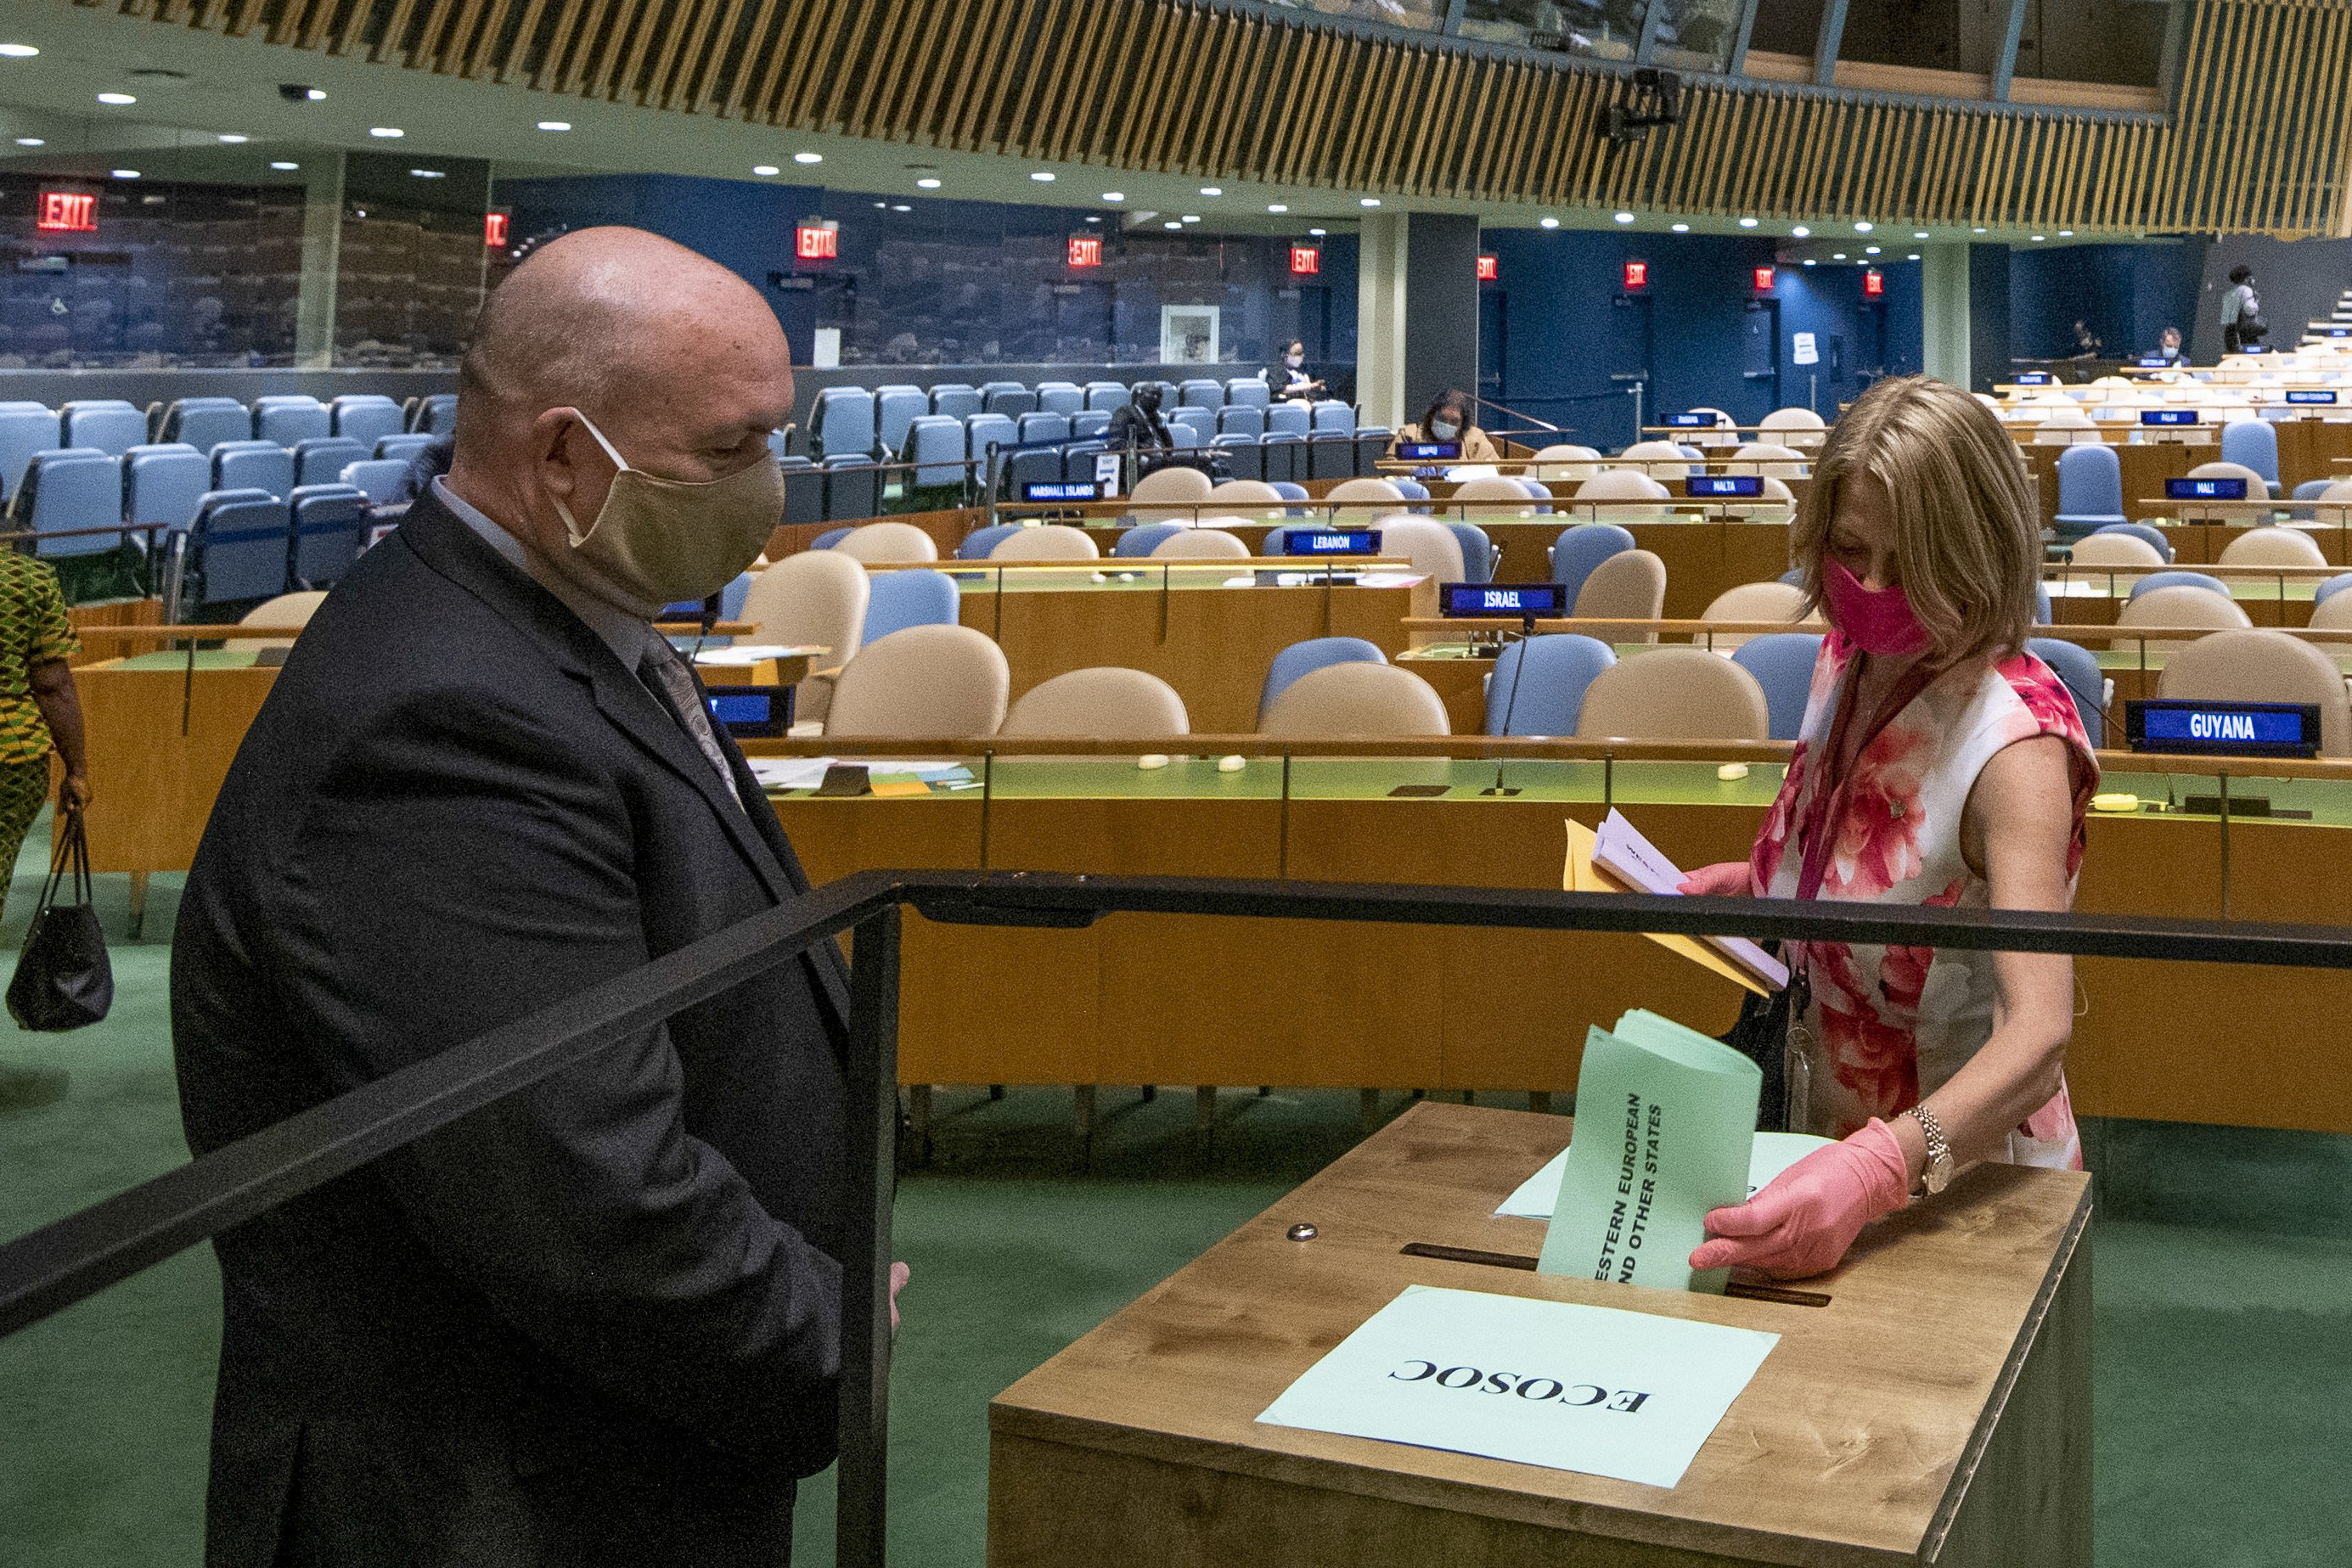 Norway, Ireland win UN council seats in vote amid pandemic